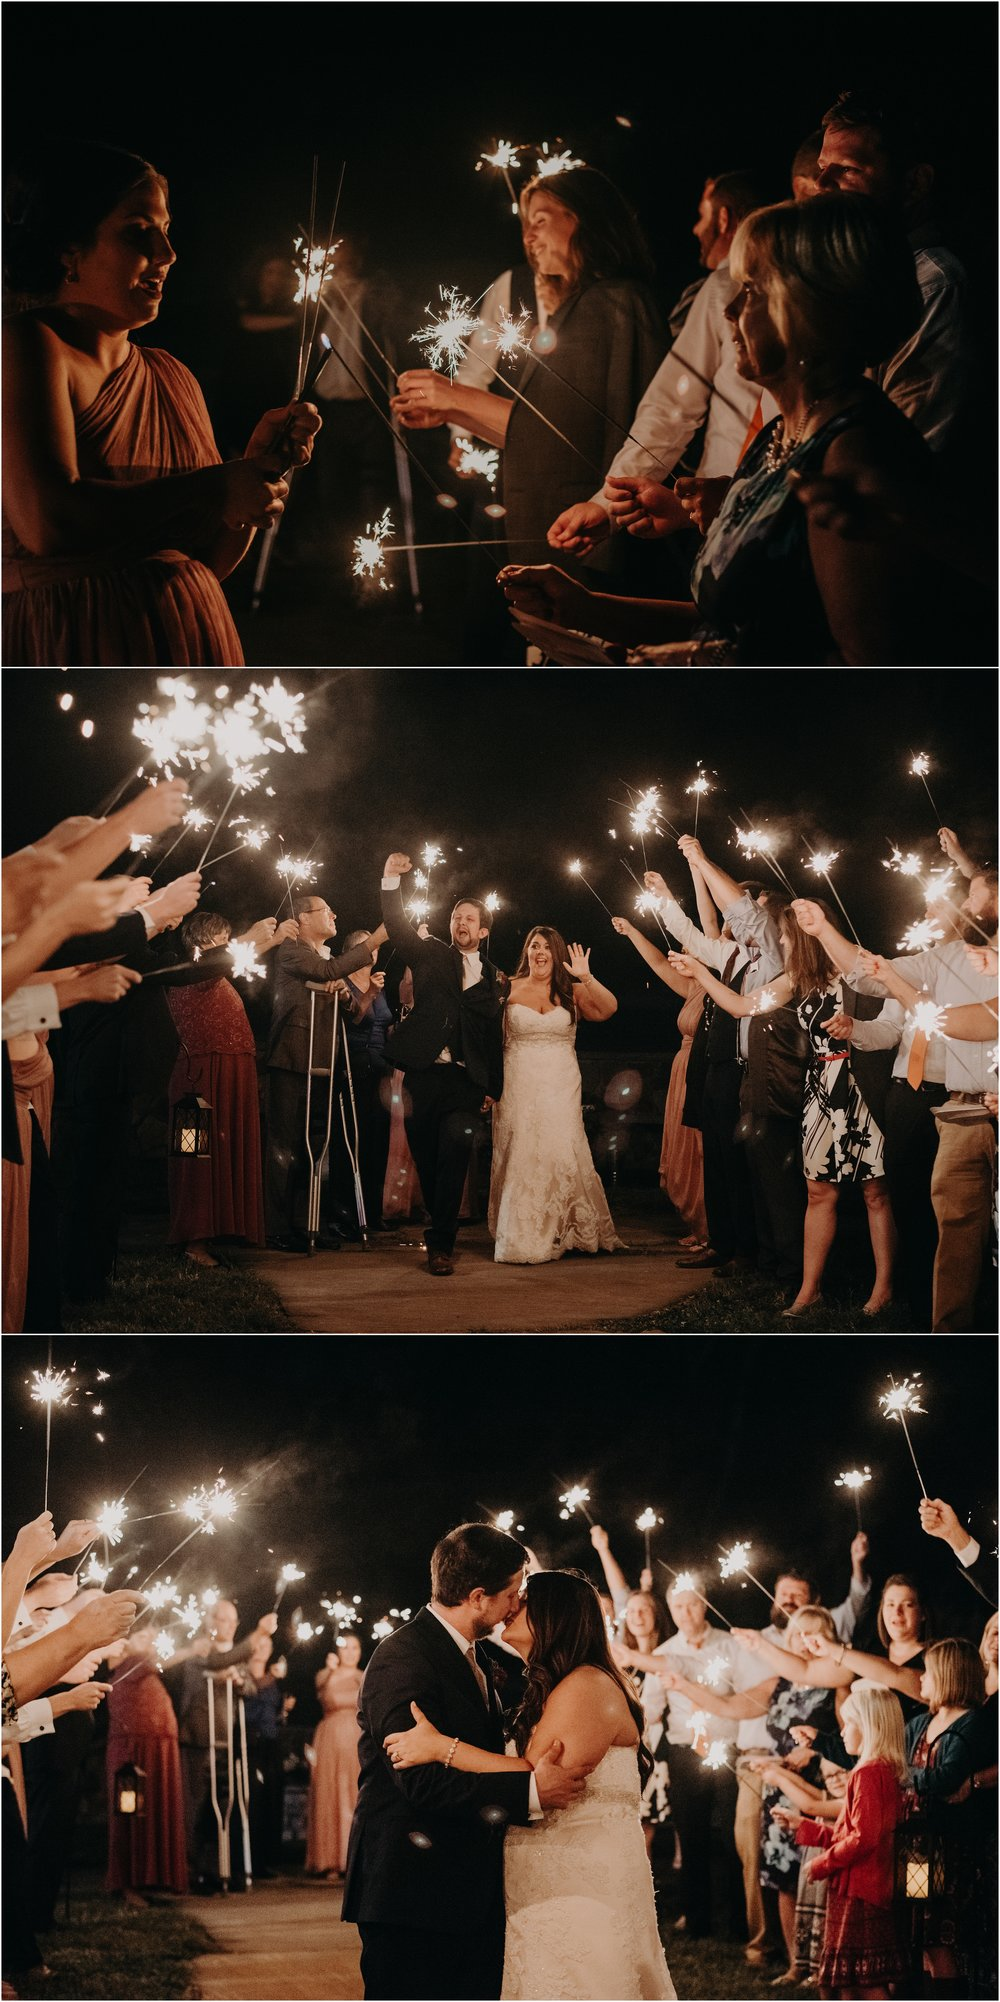 Bride and groom make a sparkler exit to end their wedding day